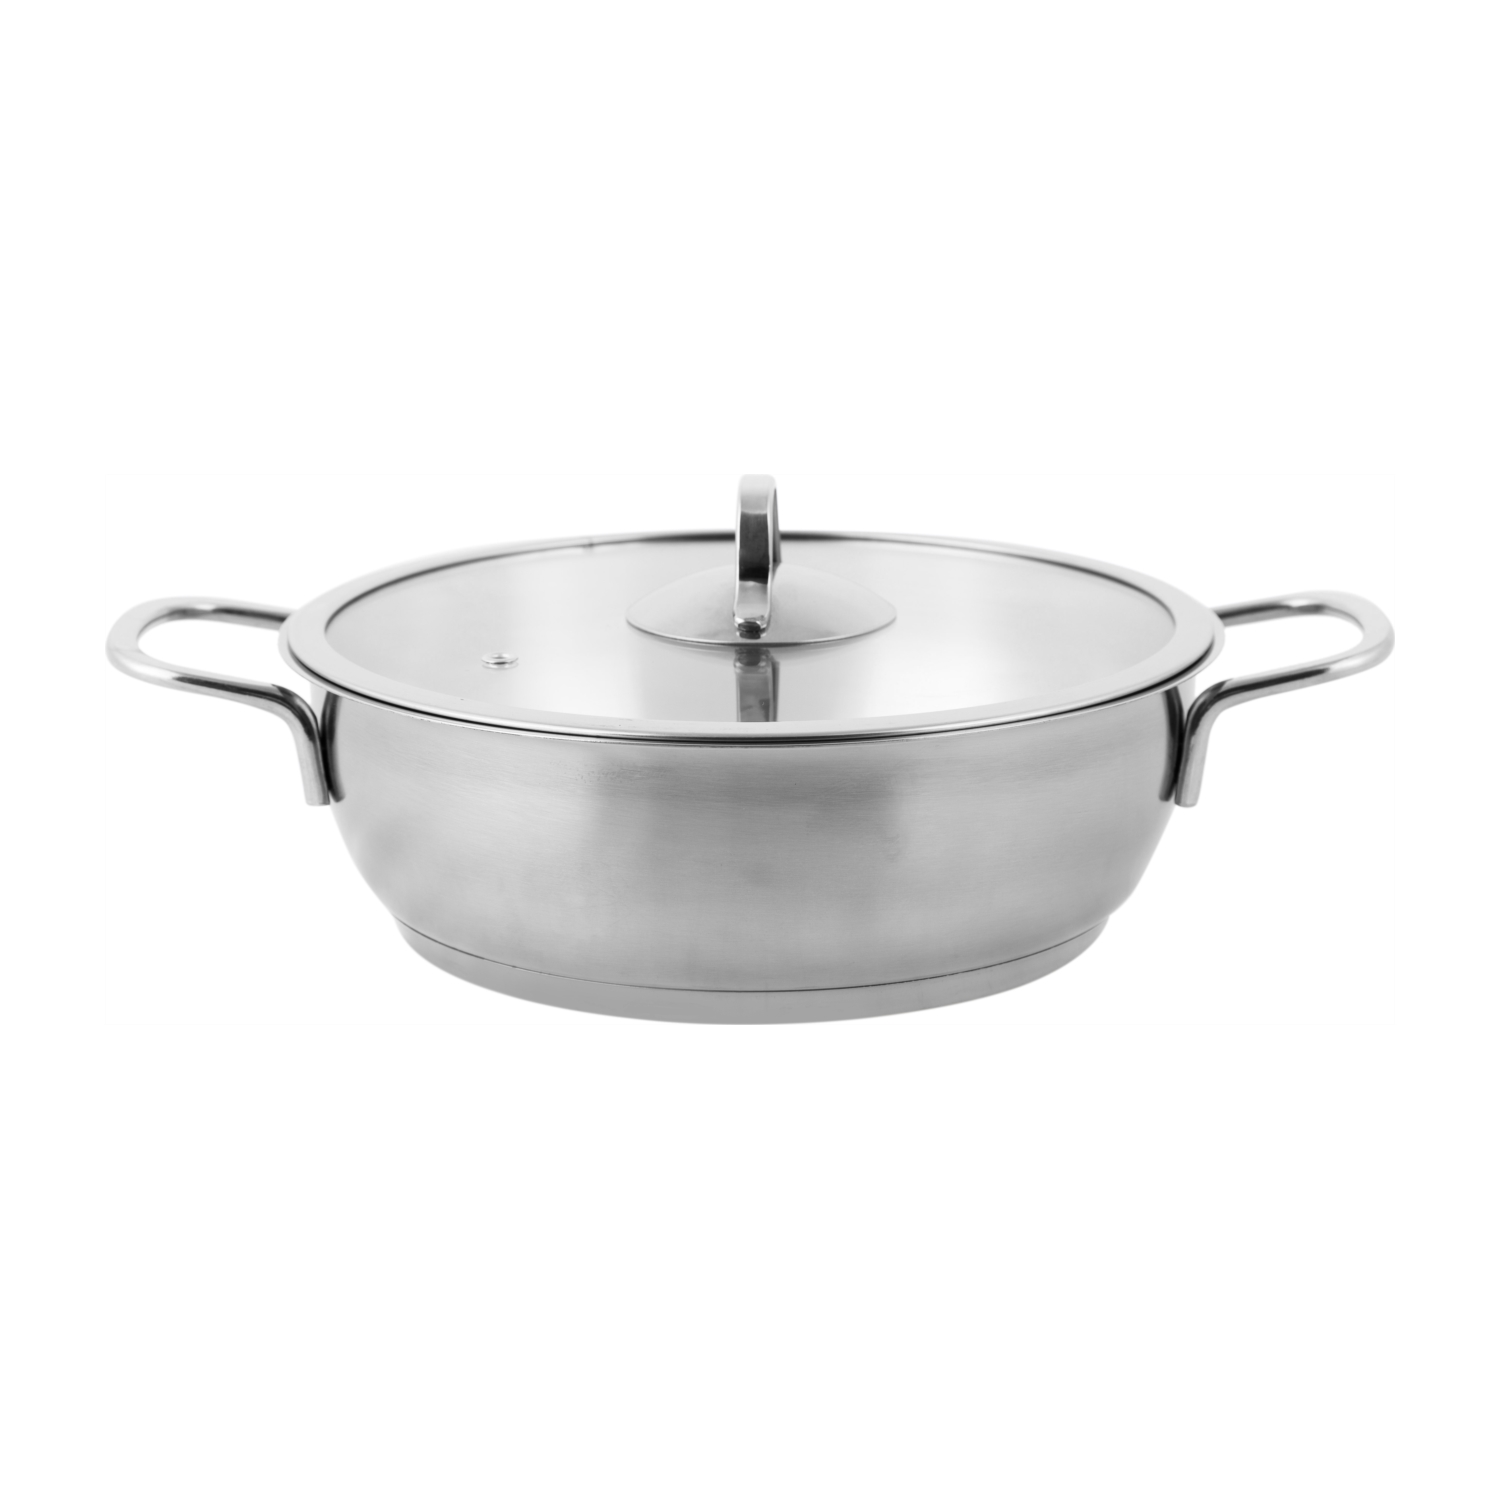 PREMIERE STAINLESS STEEL BASIK TENCERE 24 CM